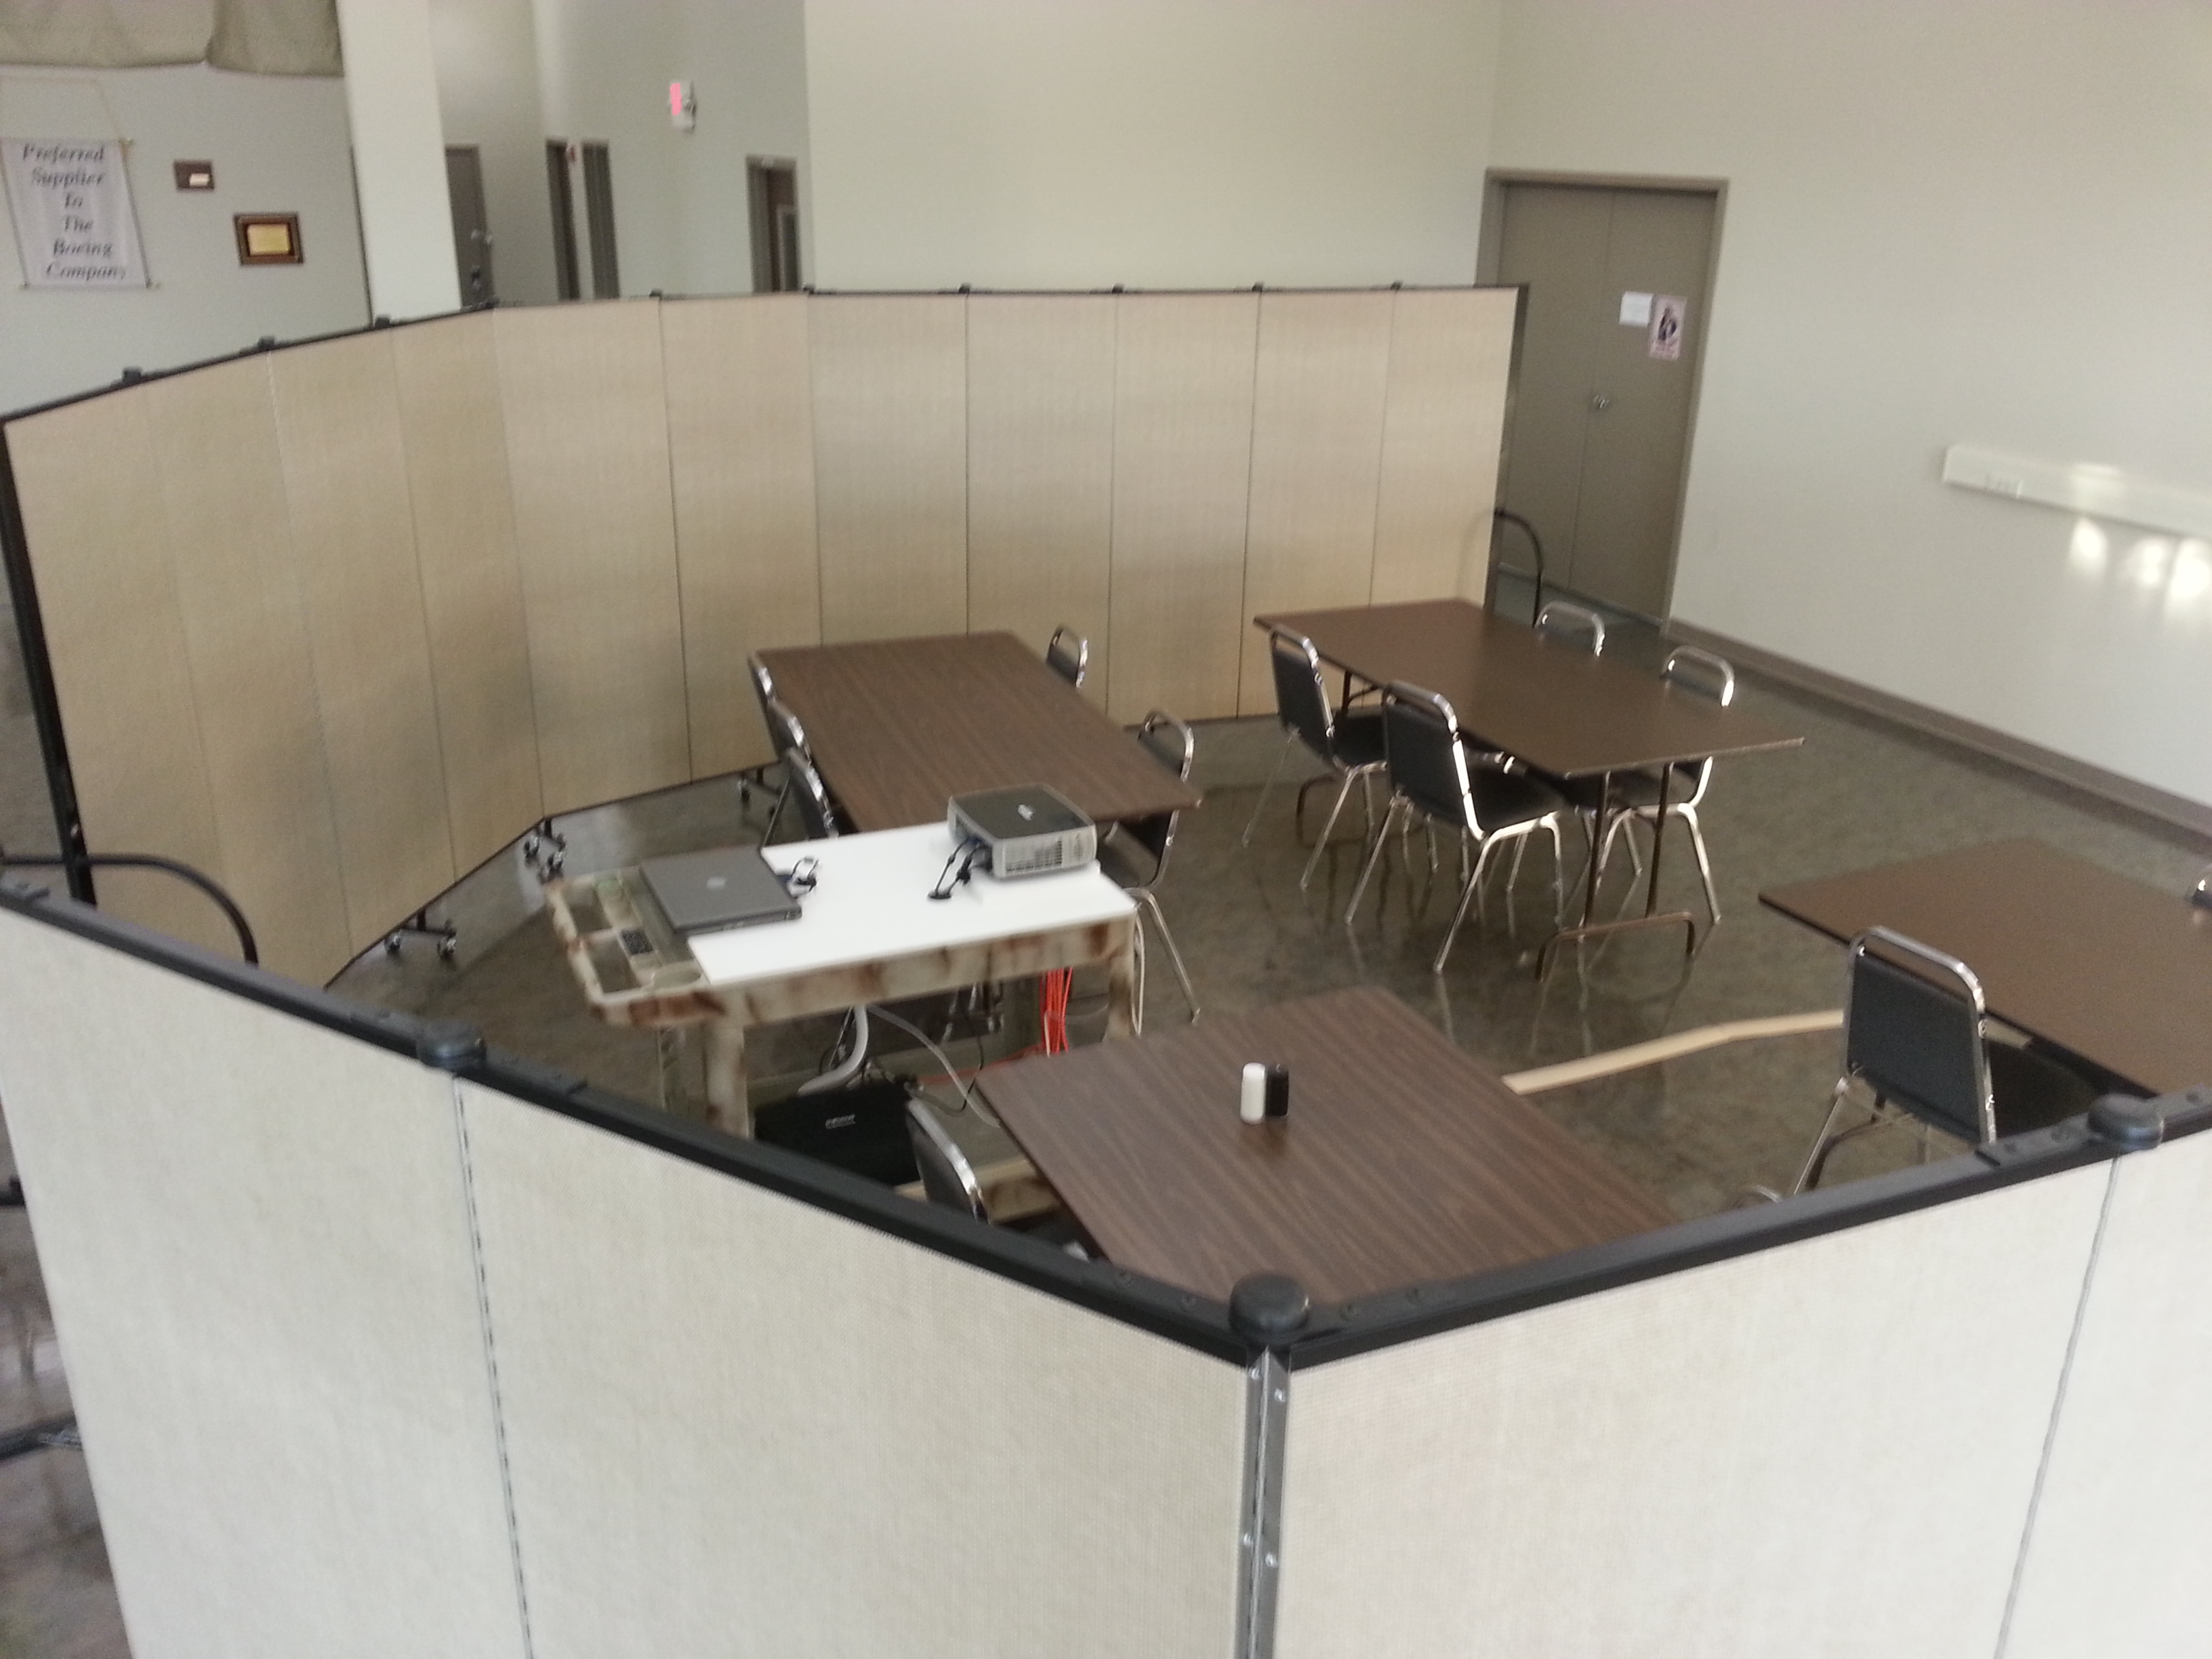 Screenflex Room Dividers are arranged around a group of 4 tables and a projector to create a conference room within a large open meeting area.